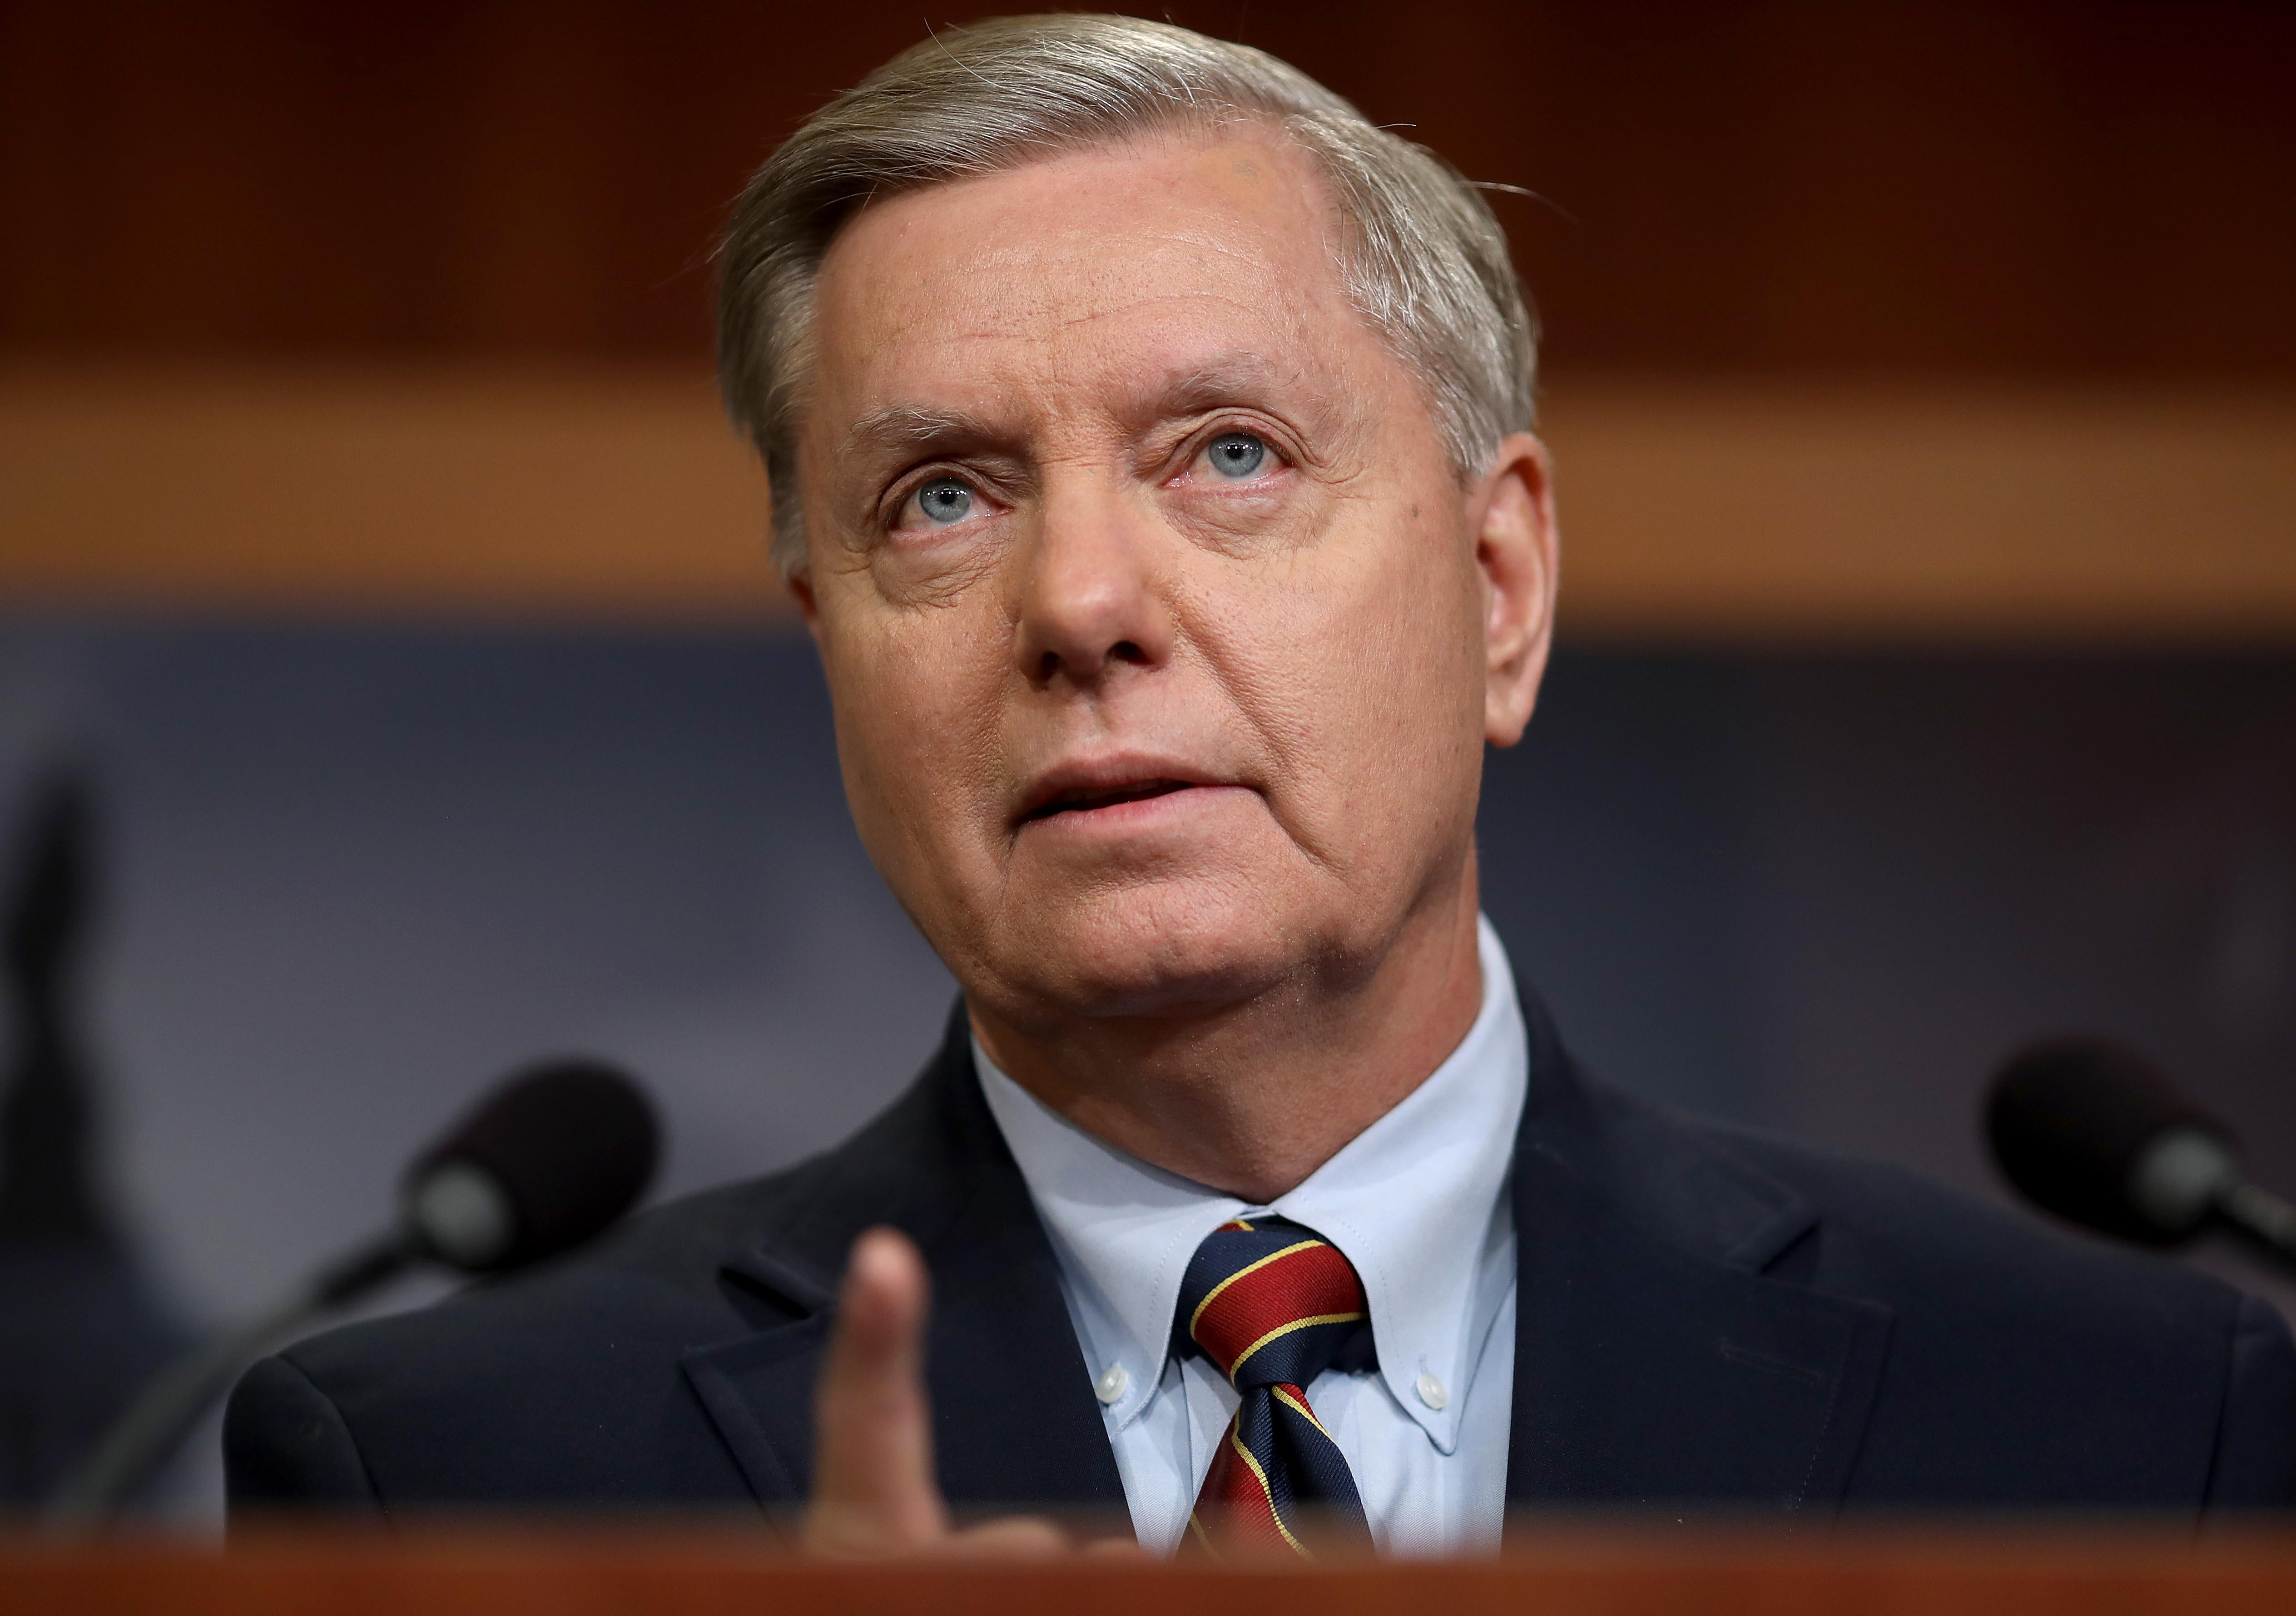 Sen. Lindsey Graham (R-SC) speaks during a press conference at the U.S. Capitol on December 20, 2018 in Washington, D.C.